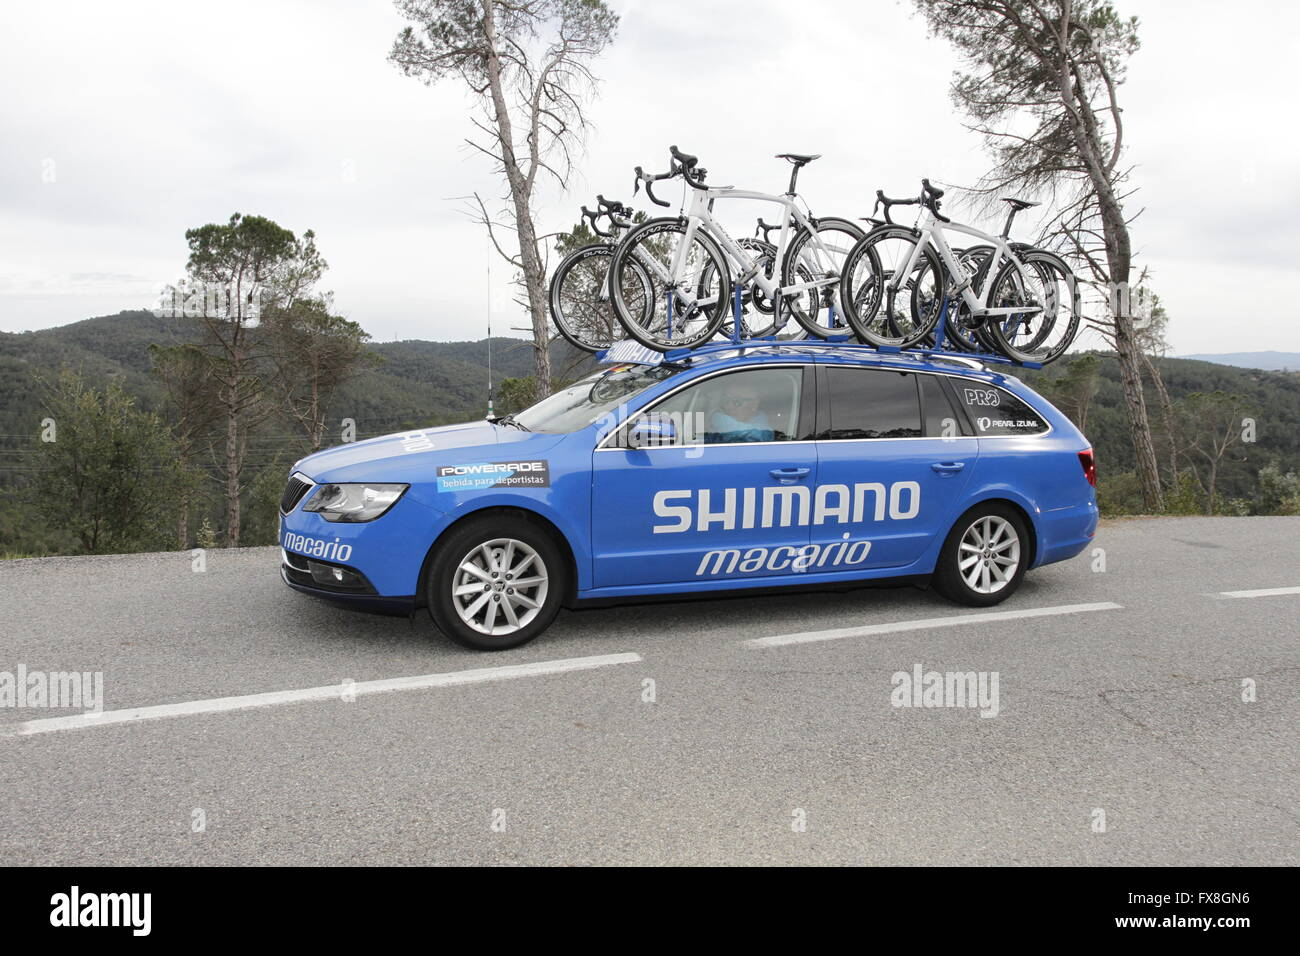 Team Shimano Macarlo support car in the Tour of Catalonia 2016 near Girona, Spain - Stock Image